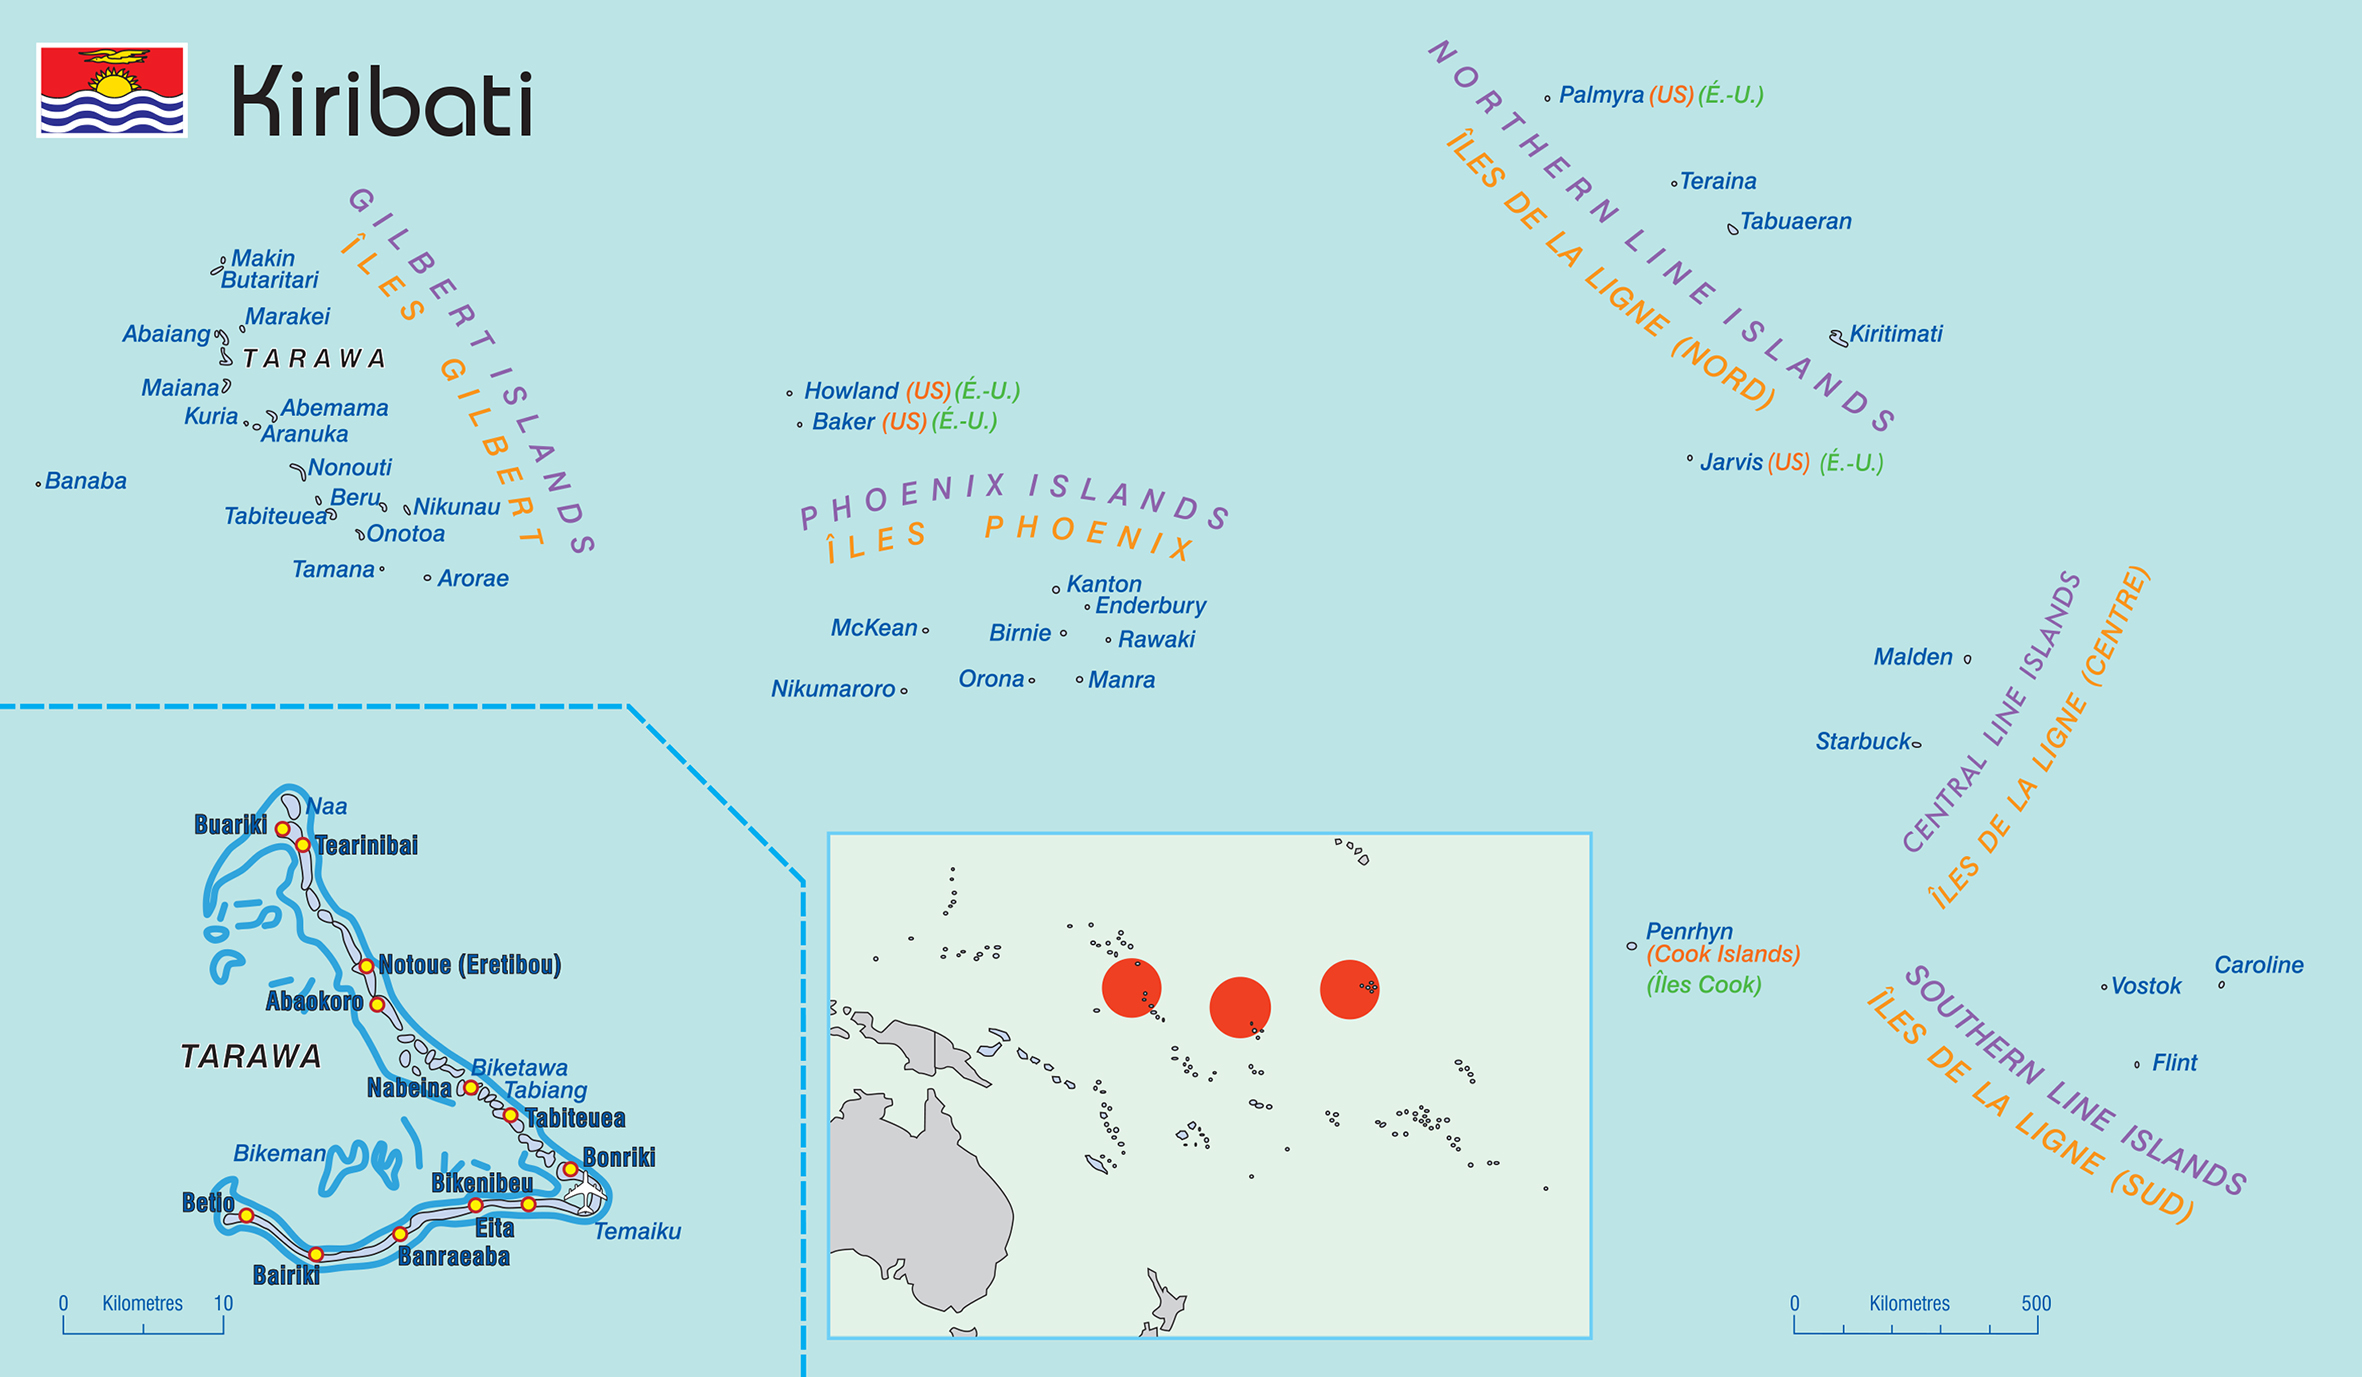 Kiribati Pacific Community